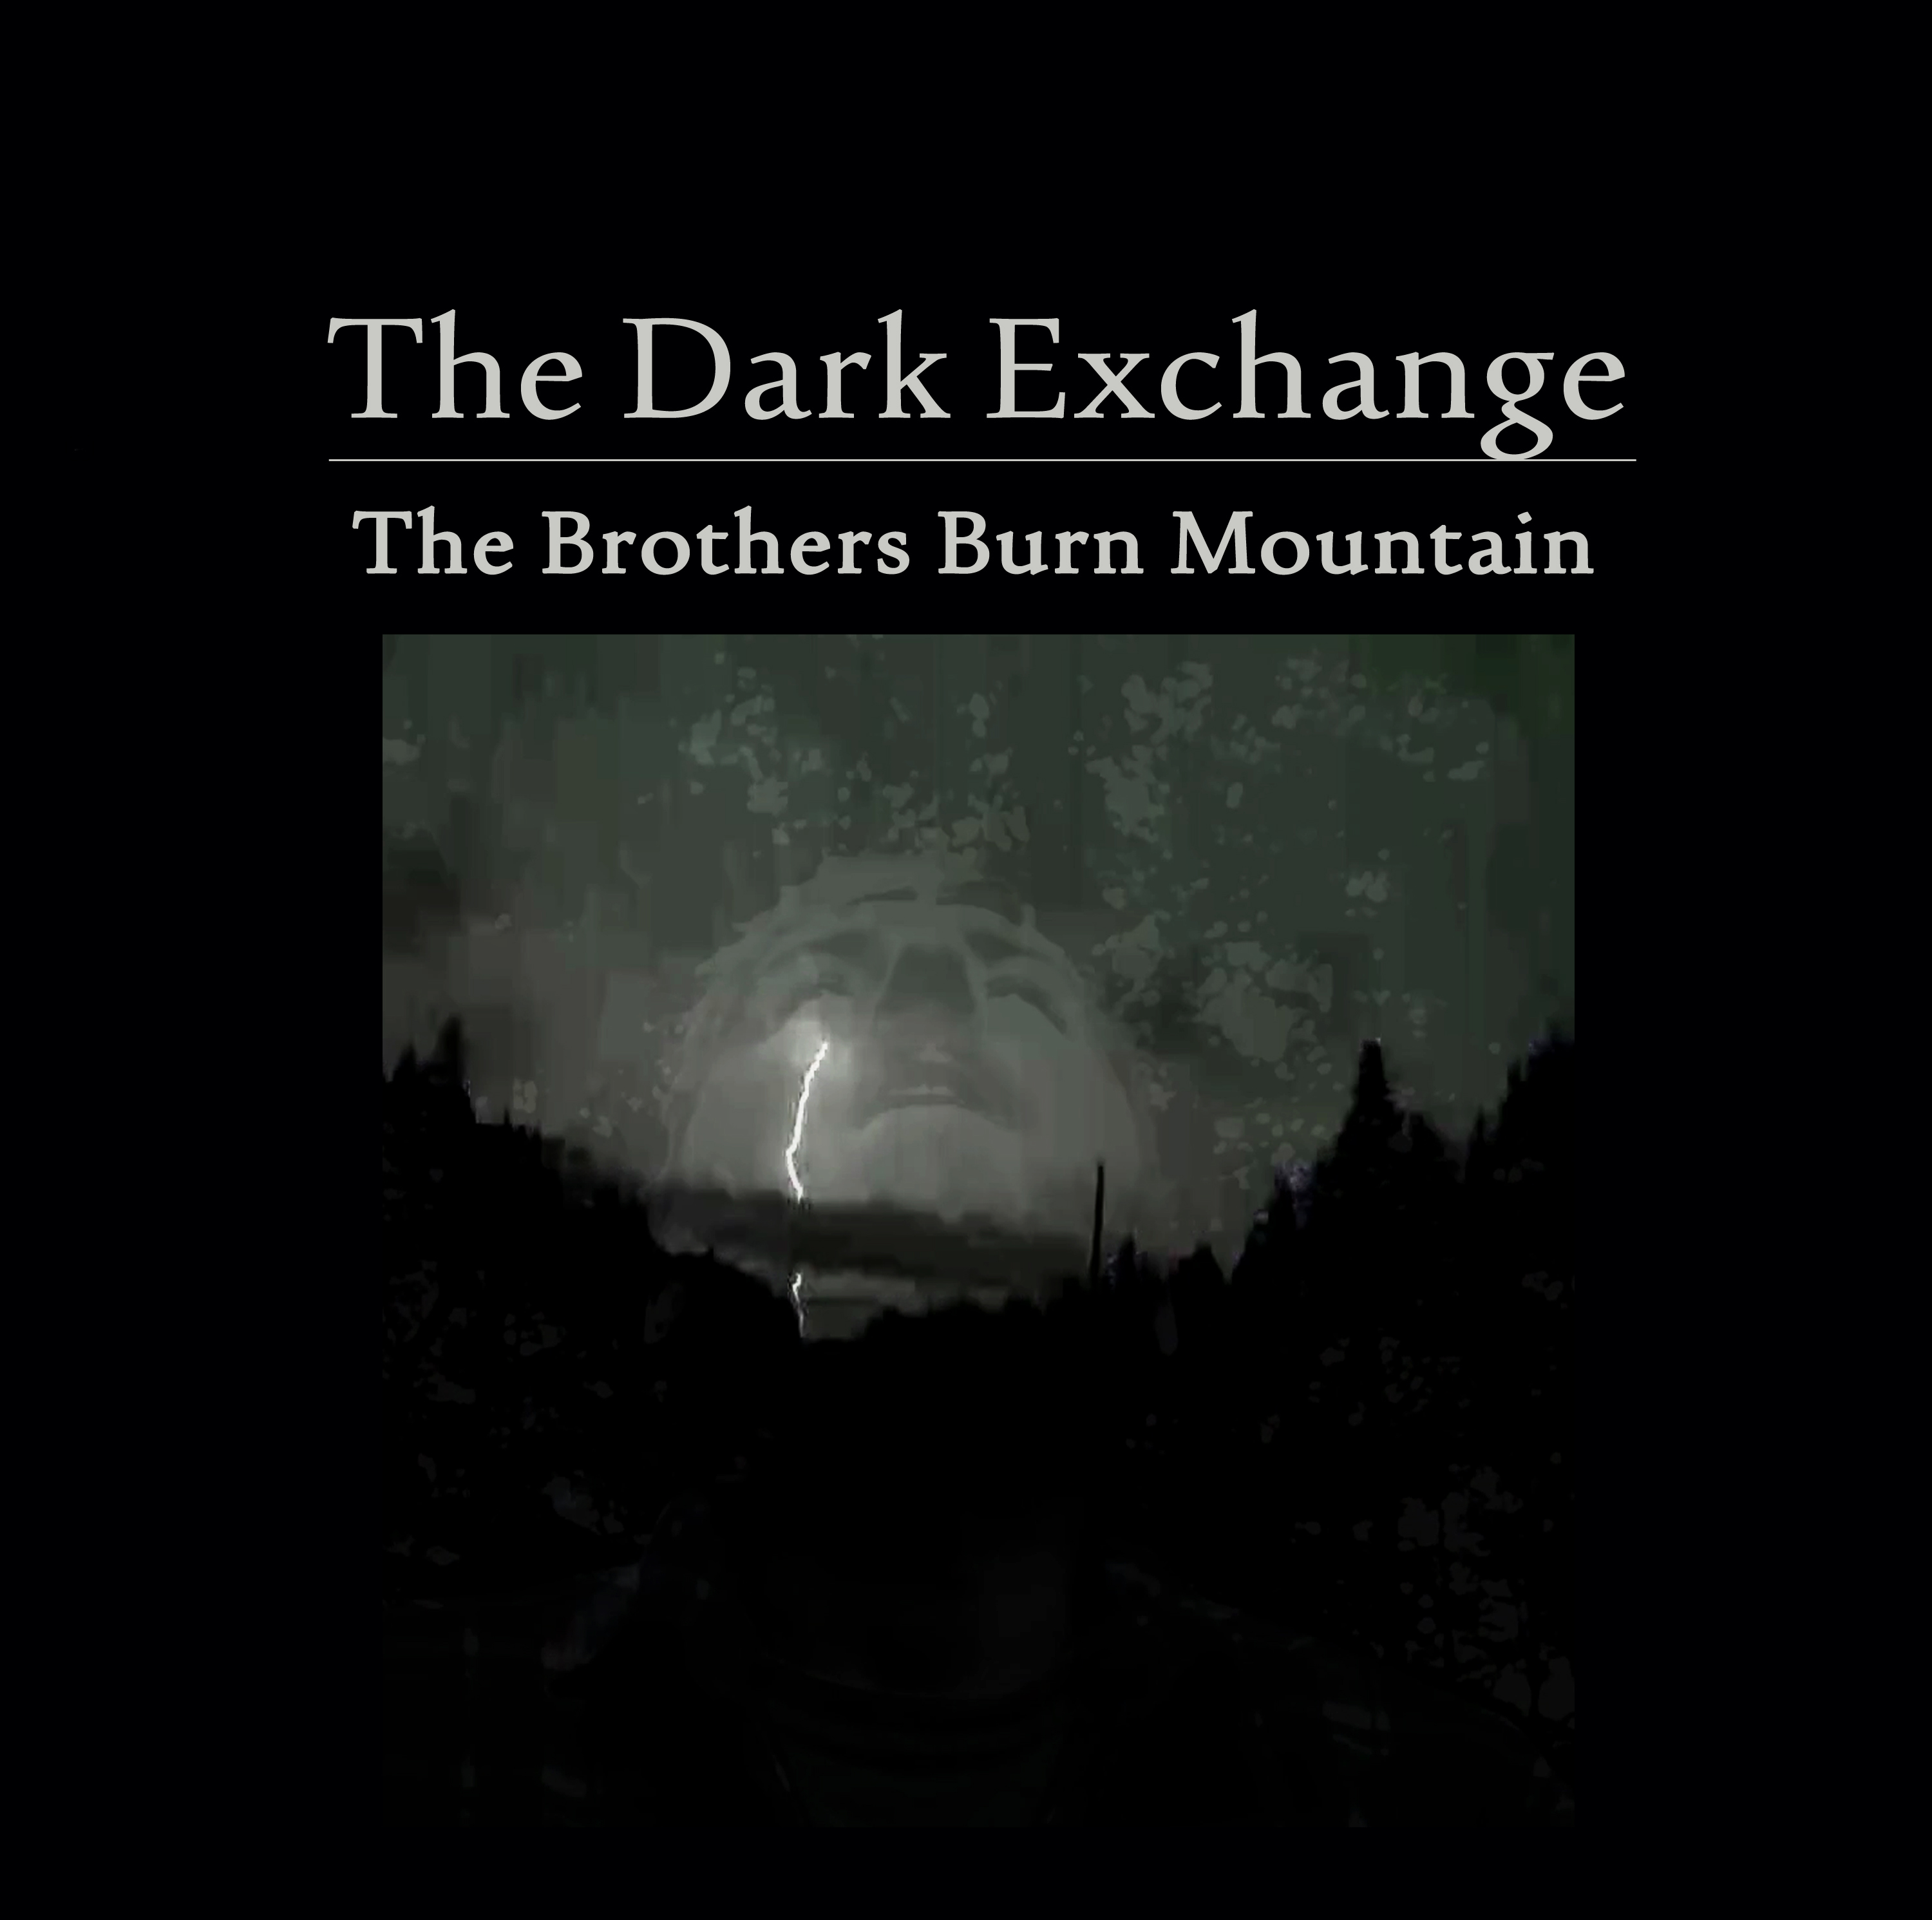 Album Image The Dark Exchange